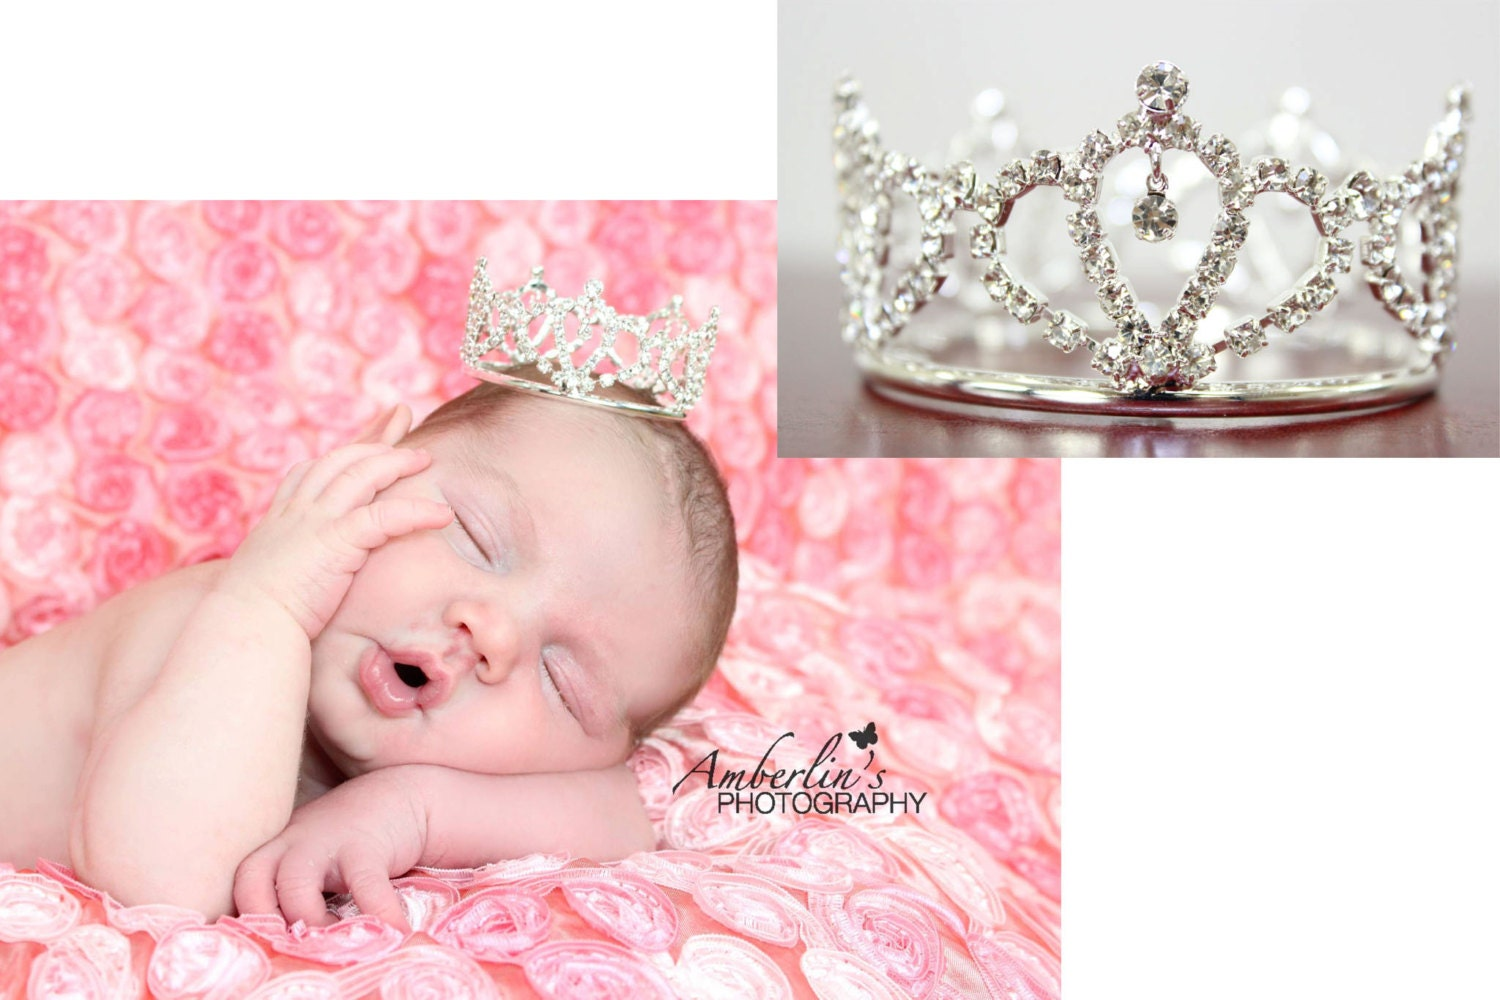 Baby Crown. Baby Tiara. Mini Tiara. Newborn crown. Newborn tiara. Crystal crown. Newborn photo prop. baby showergift